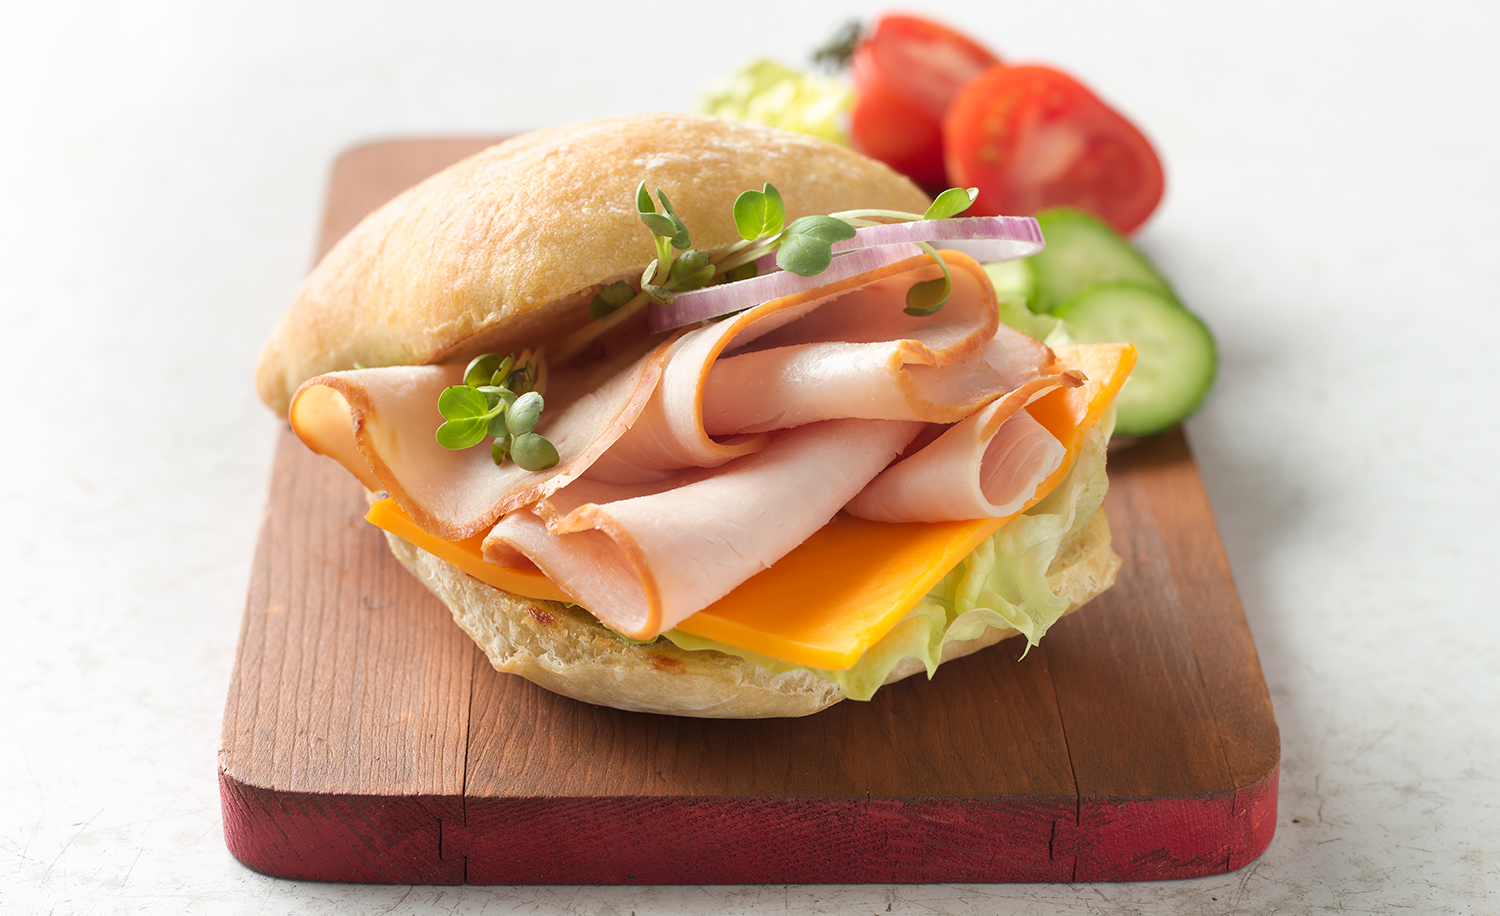 Sliced Turkey Sandwich | Tony Kubat Photography